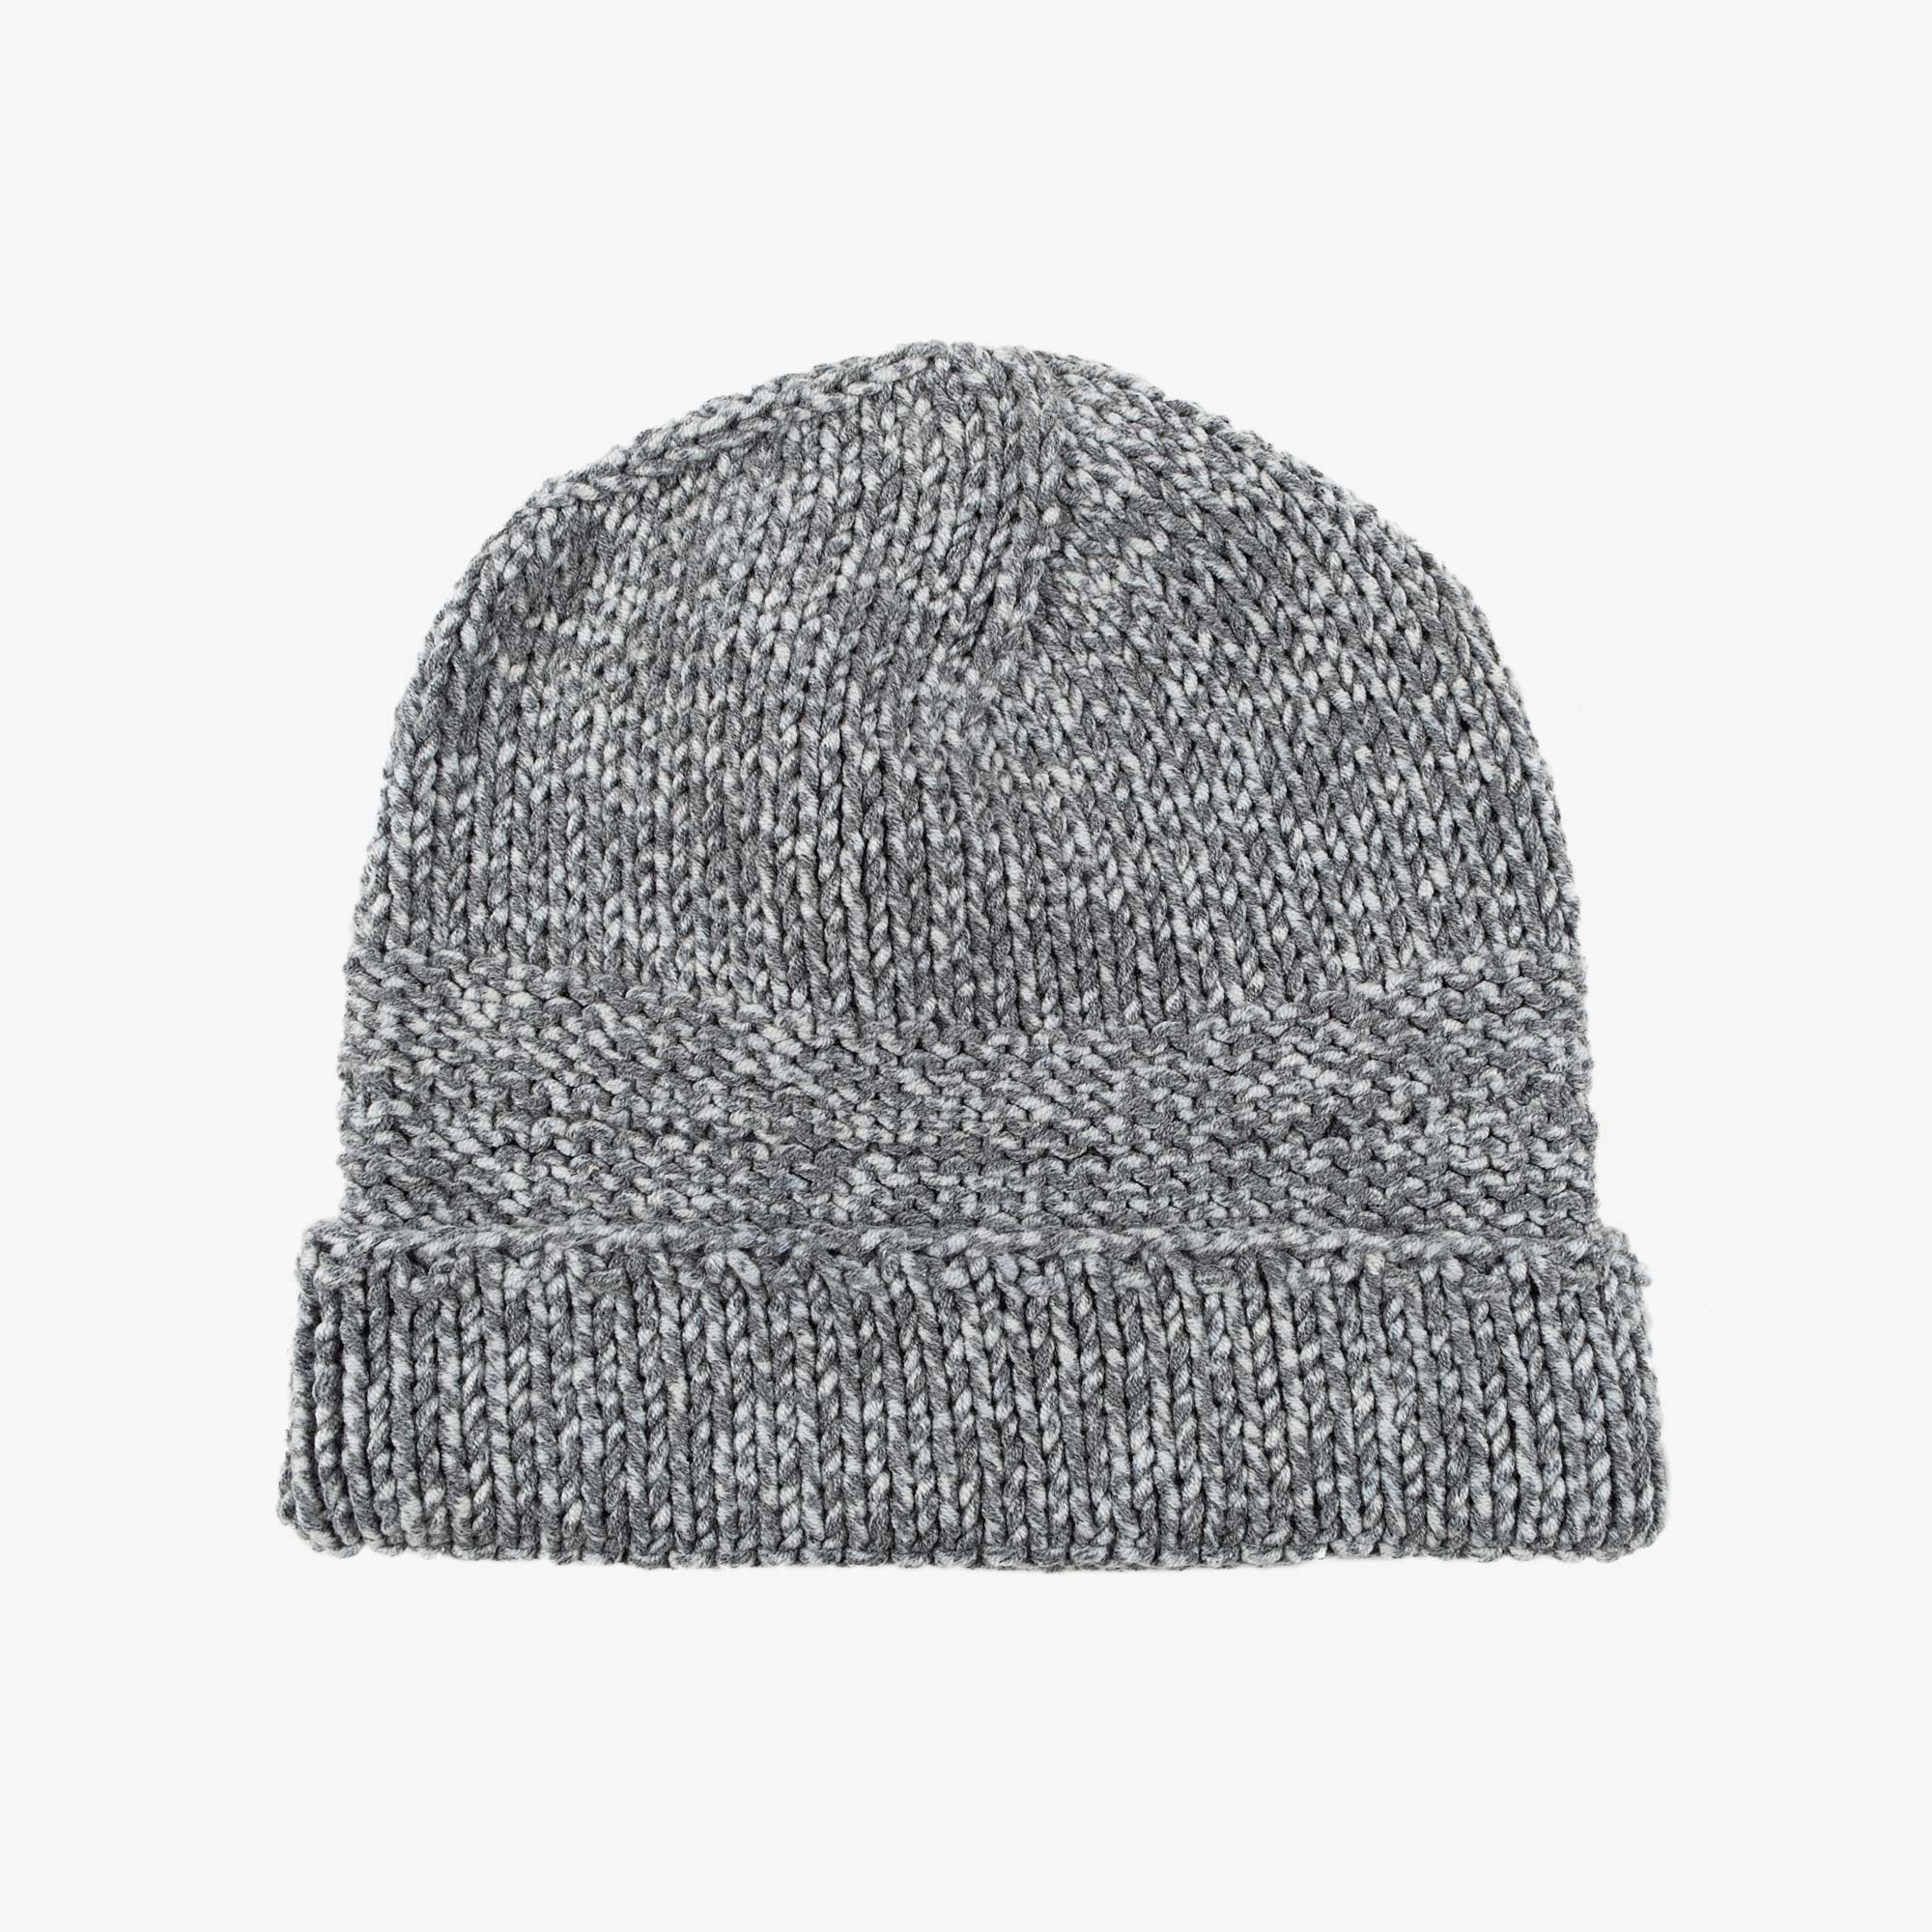 About The Tower t'1311 Beanie - Grey 1